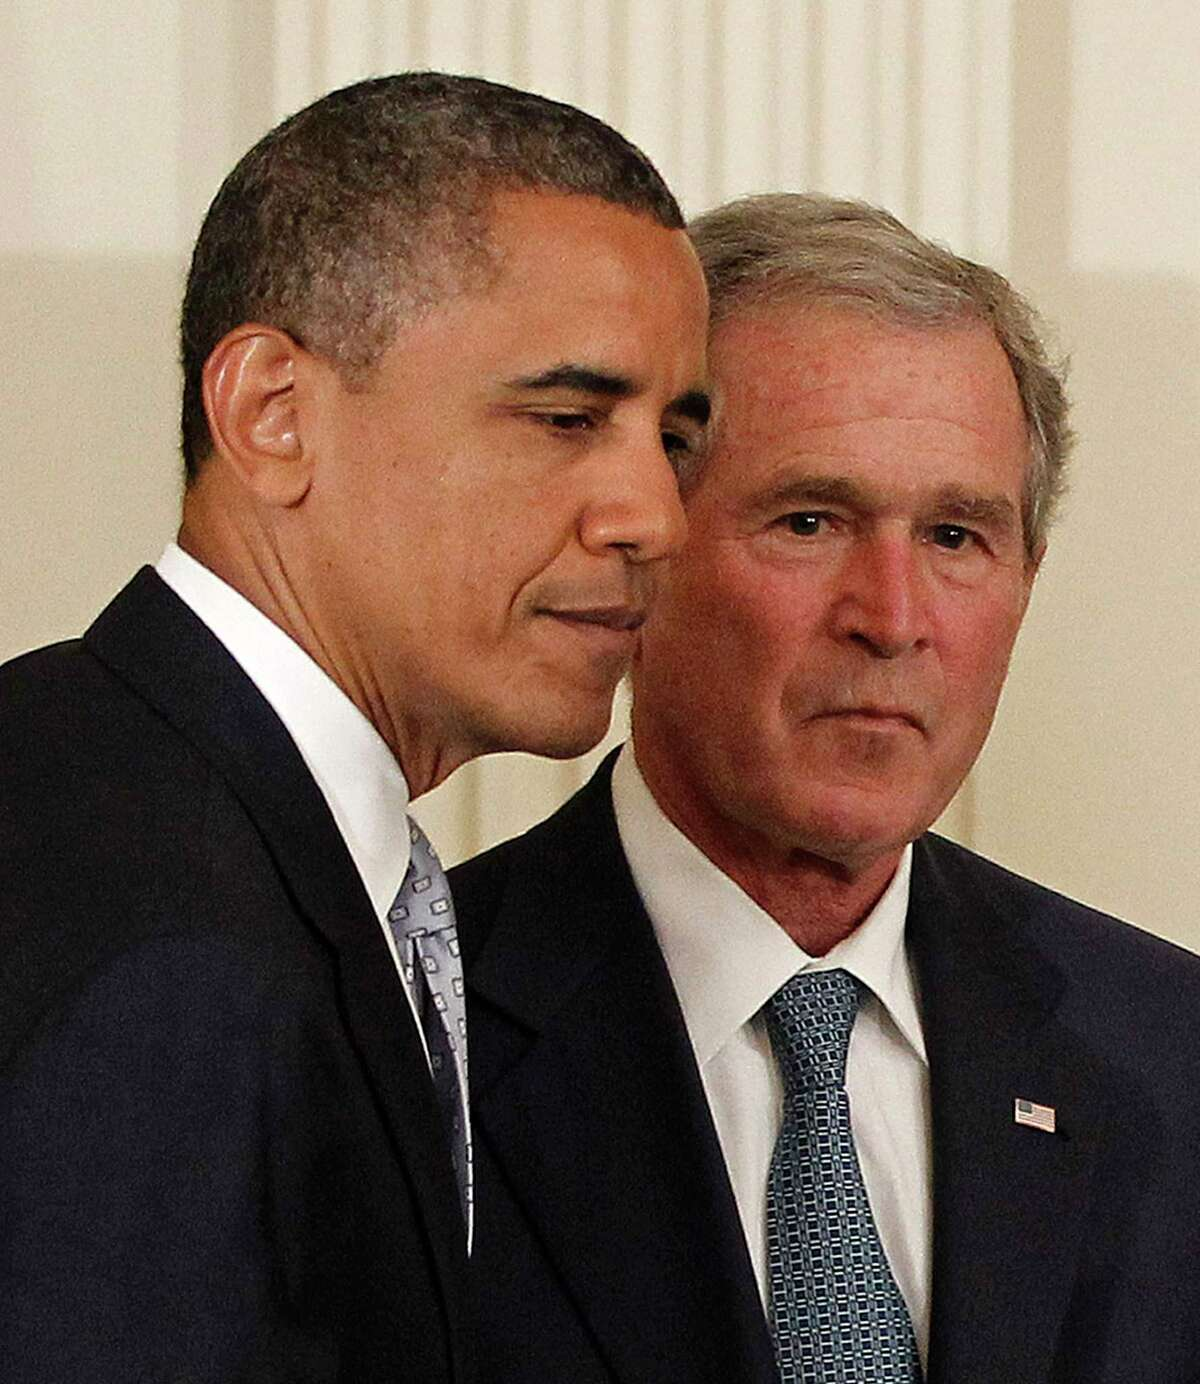 """FILE - In this Thursday, May 31, 2012, file photo, President Barack Obama and former President George W. Bush take part in a ceremony in the East Room of the White House in Washington, to unveil the Bush portrait. Taunted by Republicans to declare war on """"radical Islamic terrorism,"""" Democrats are turning to an unlikely ally: George W. Bush. Obama, under pressure to be more aggressive on terrorism, regularly cites his predecessor's refusal to demonize Muslims or play into the notion of a clash between Islam and the West. It's a striking endorsement from a president whose political rise was predicated on opposition to the Iraq war and Bush's hawkish approach in the Middle East."""